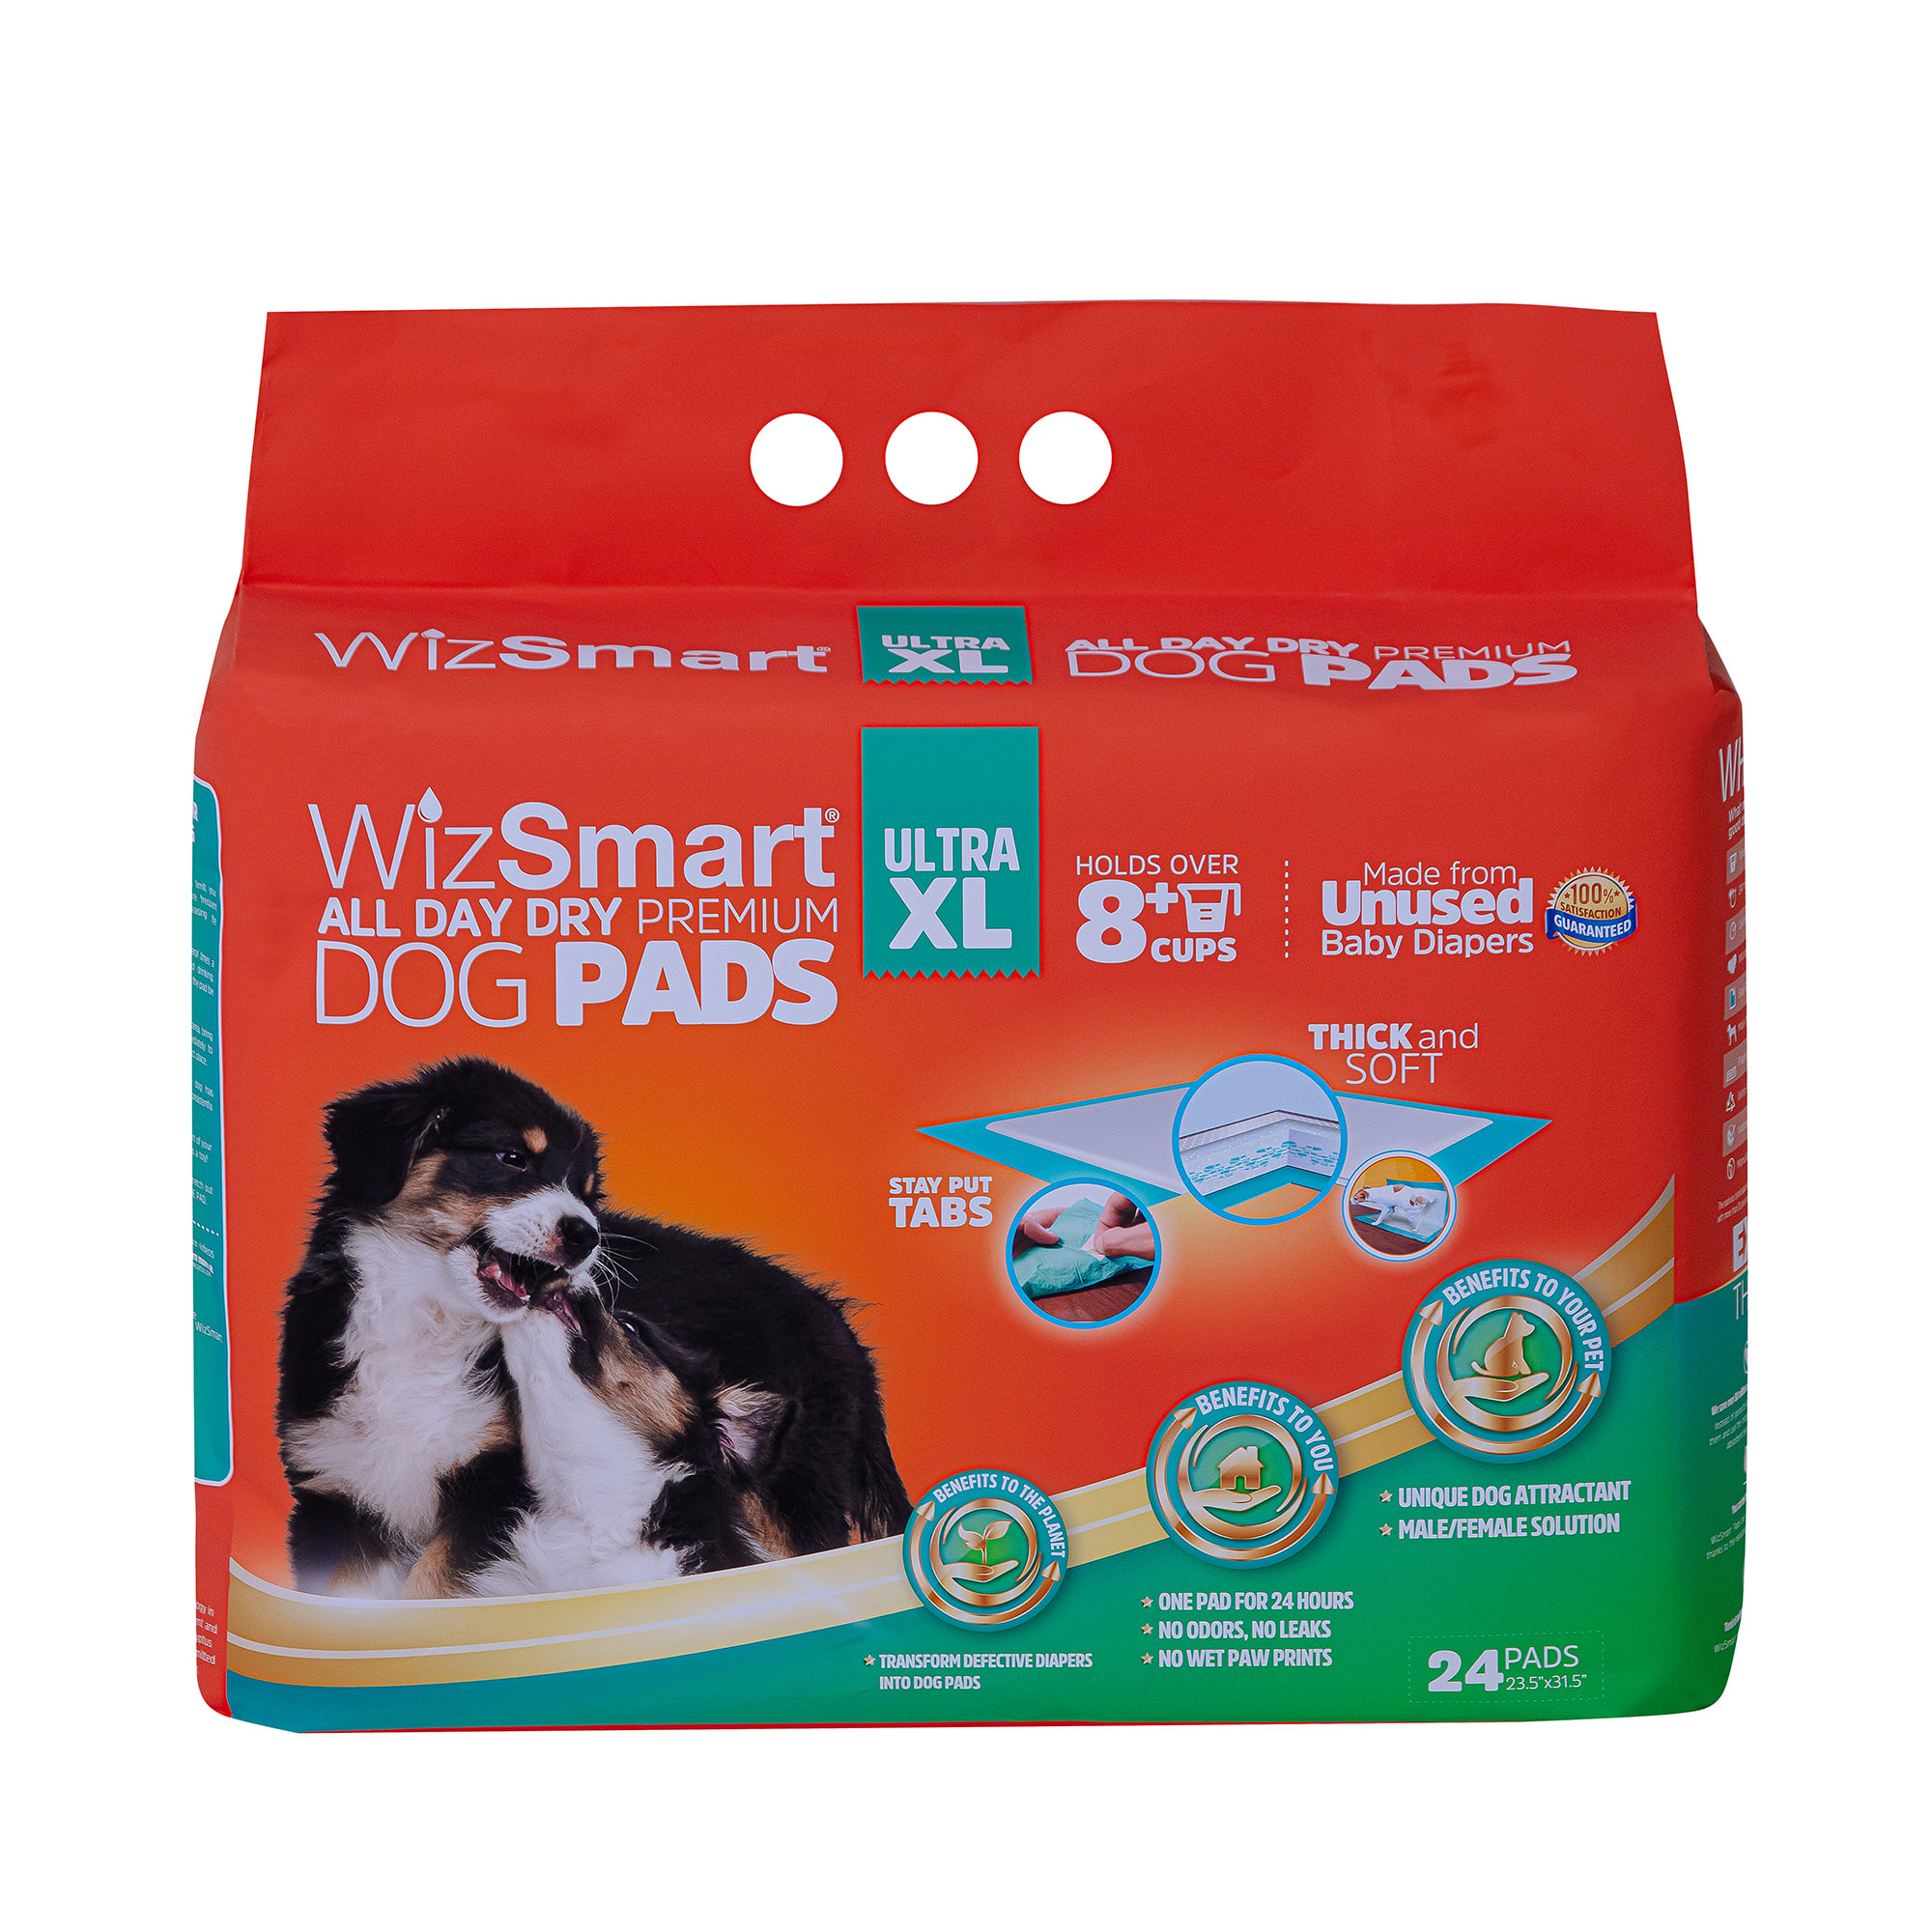 WizSmart All Day Premium X-Large Super Dry Dog Pads